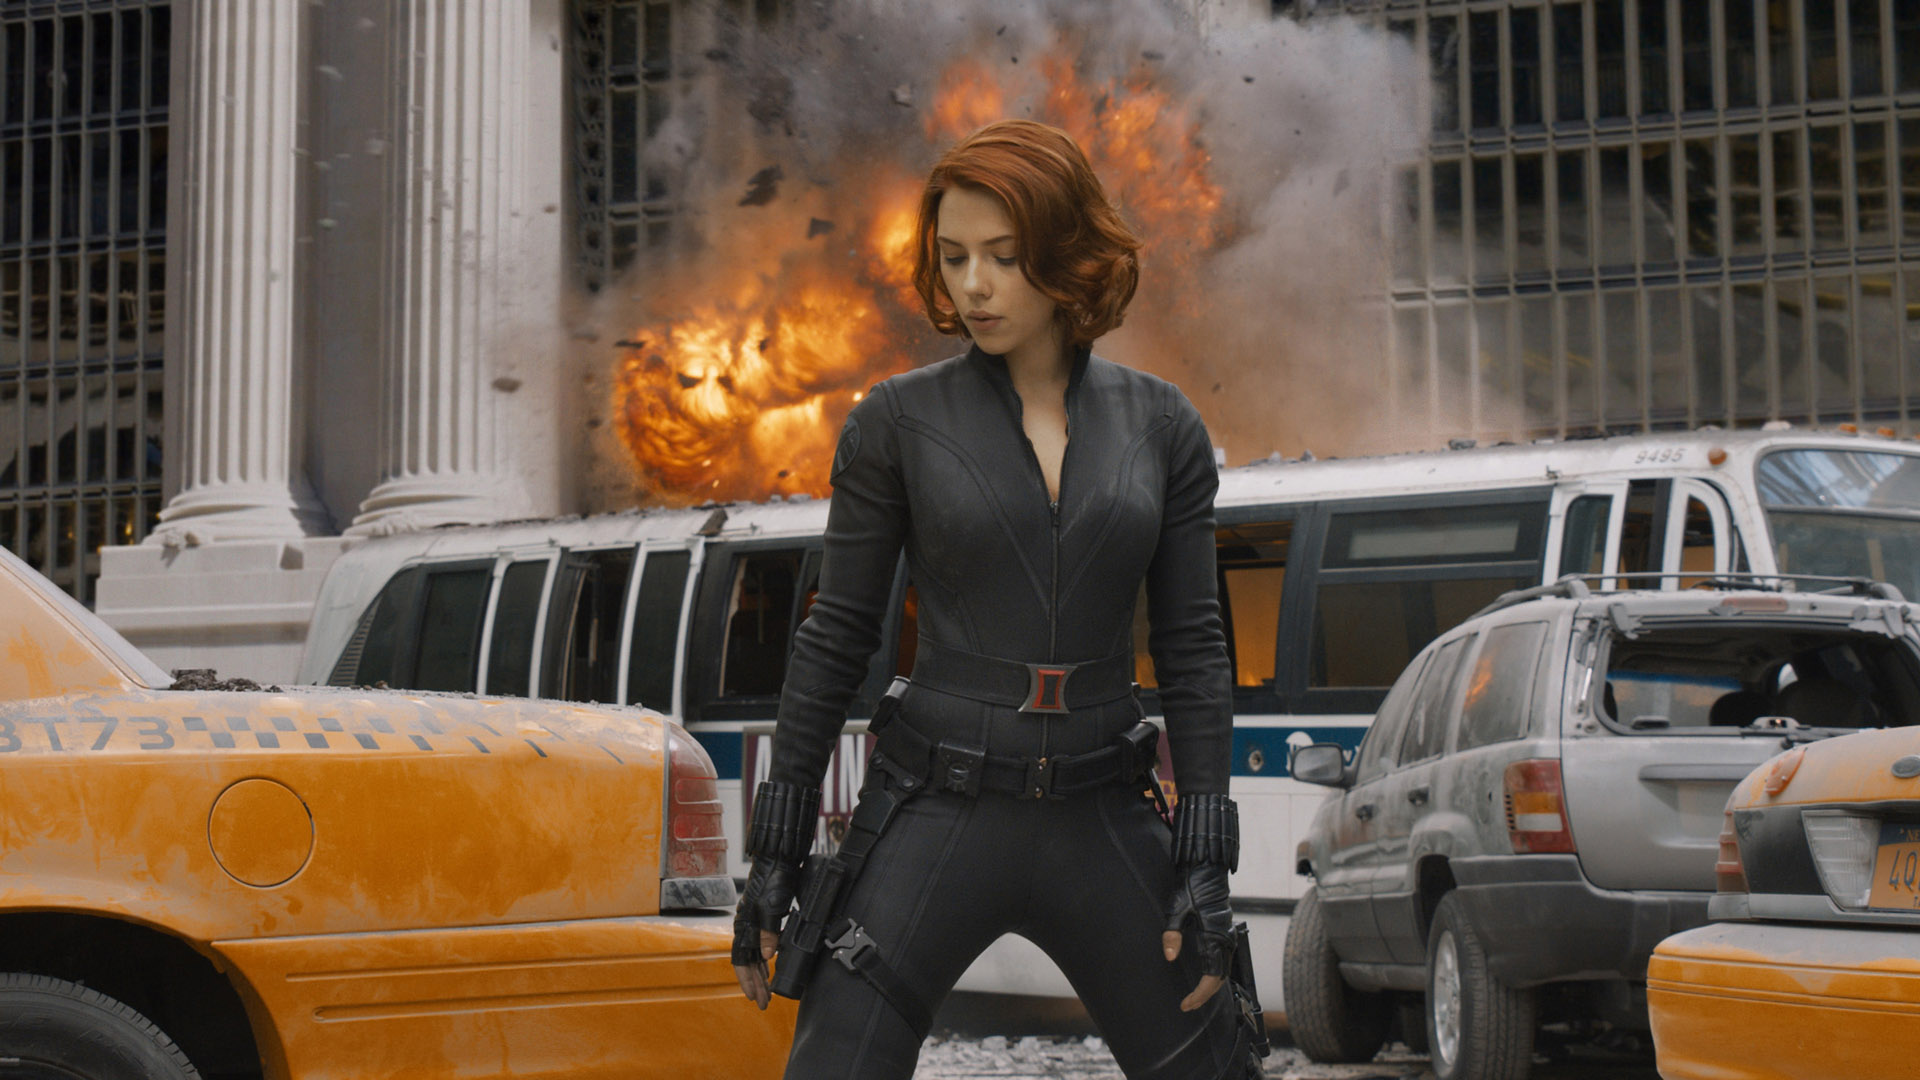 Kevin Feige Confirms Black Widow Will Not Be Rated-R